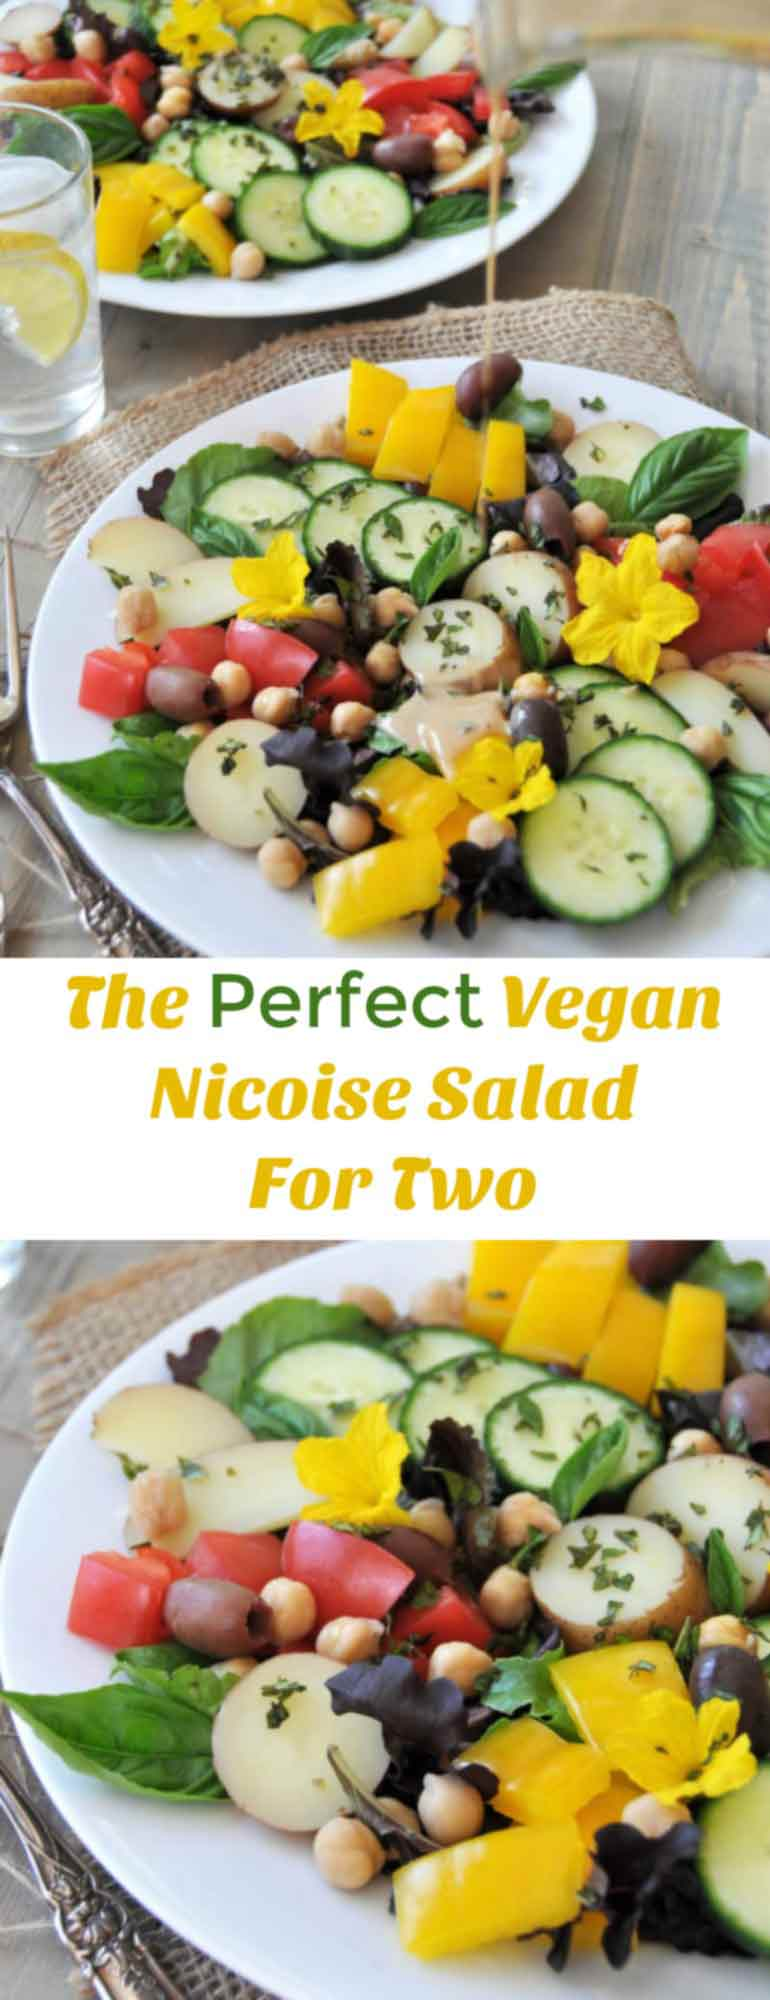 The perfect vegan nicoise salad for two! Made with chickpeas, fresh cucumbers, and a tangy Dijon mustard dressing. www.veganosity.com